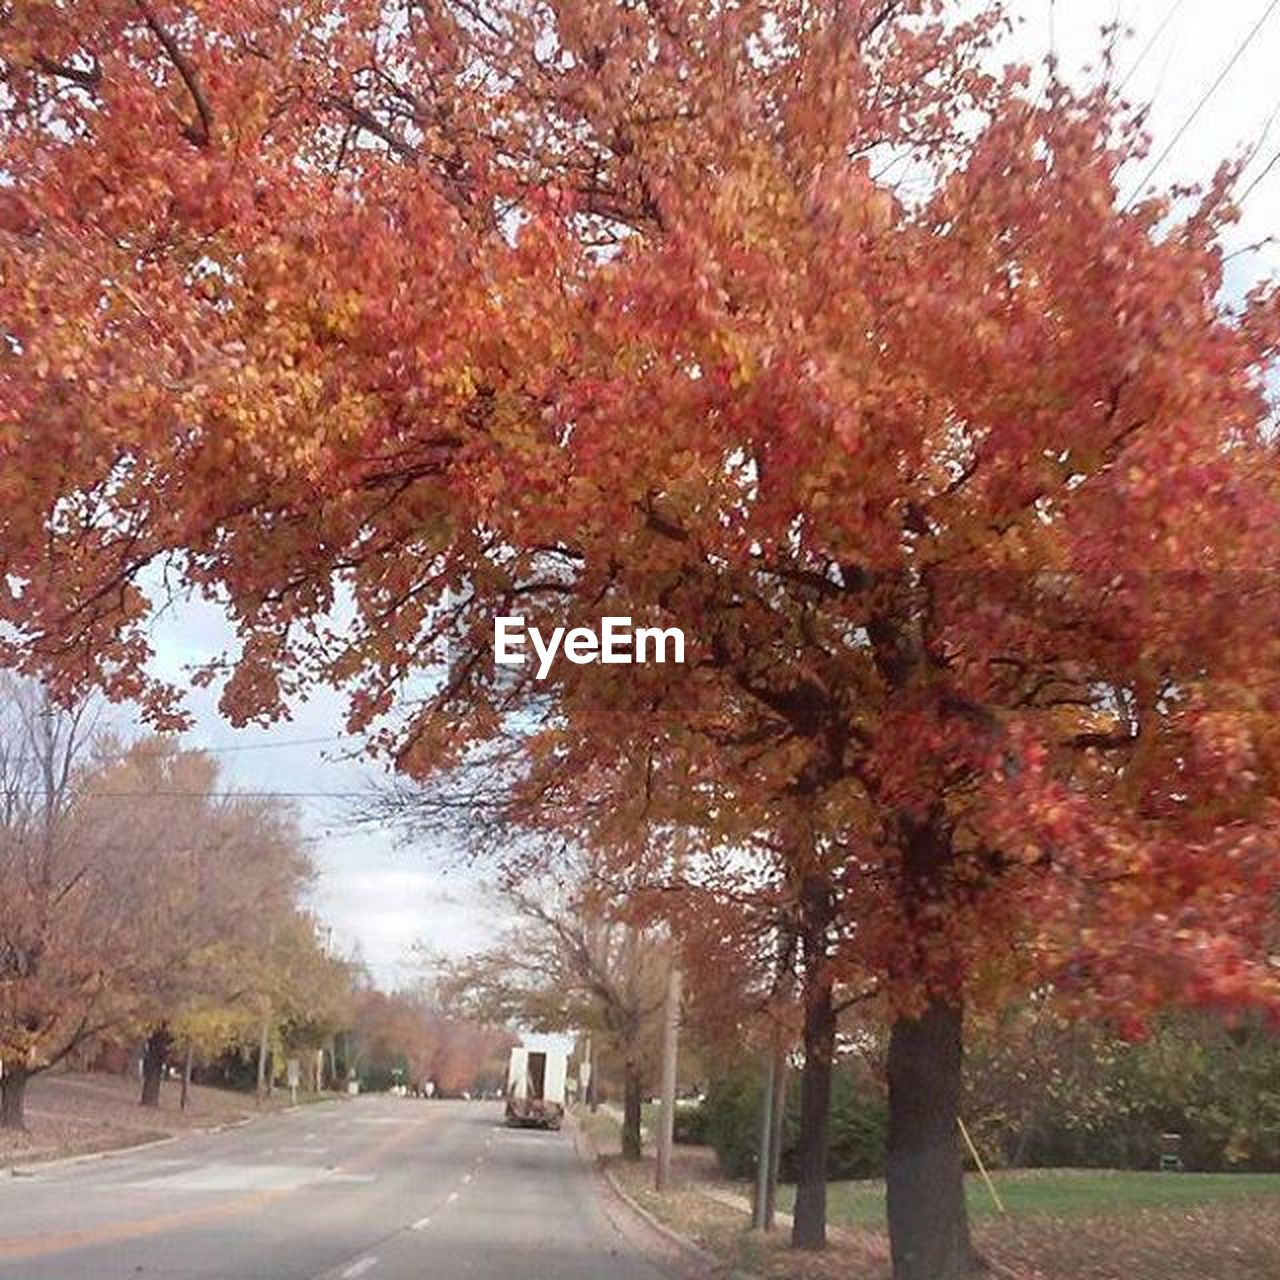 tree, autumn, change, nature, leaf, beauty in nature, tranquility, outdoors, scenics, day, street, park - man made space, growth, road, tranquil scene, branch, no people, red, sky